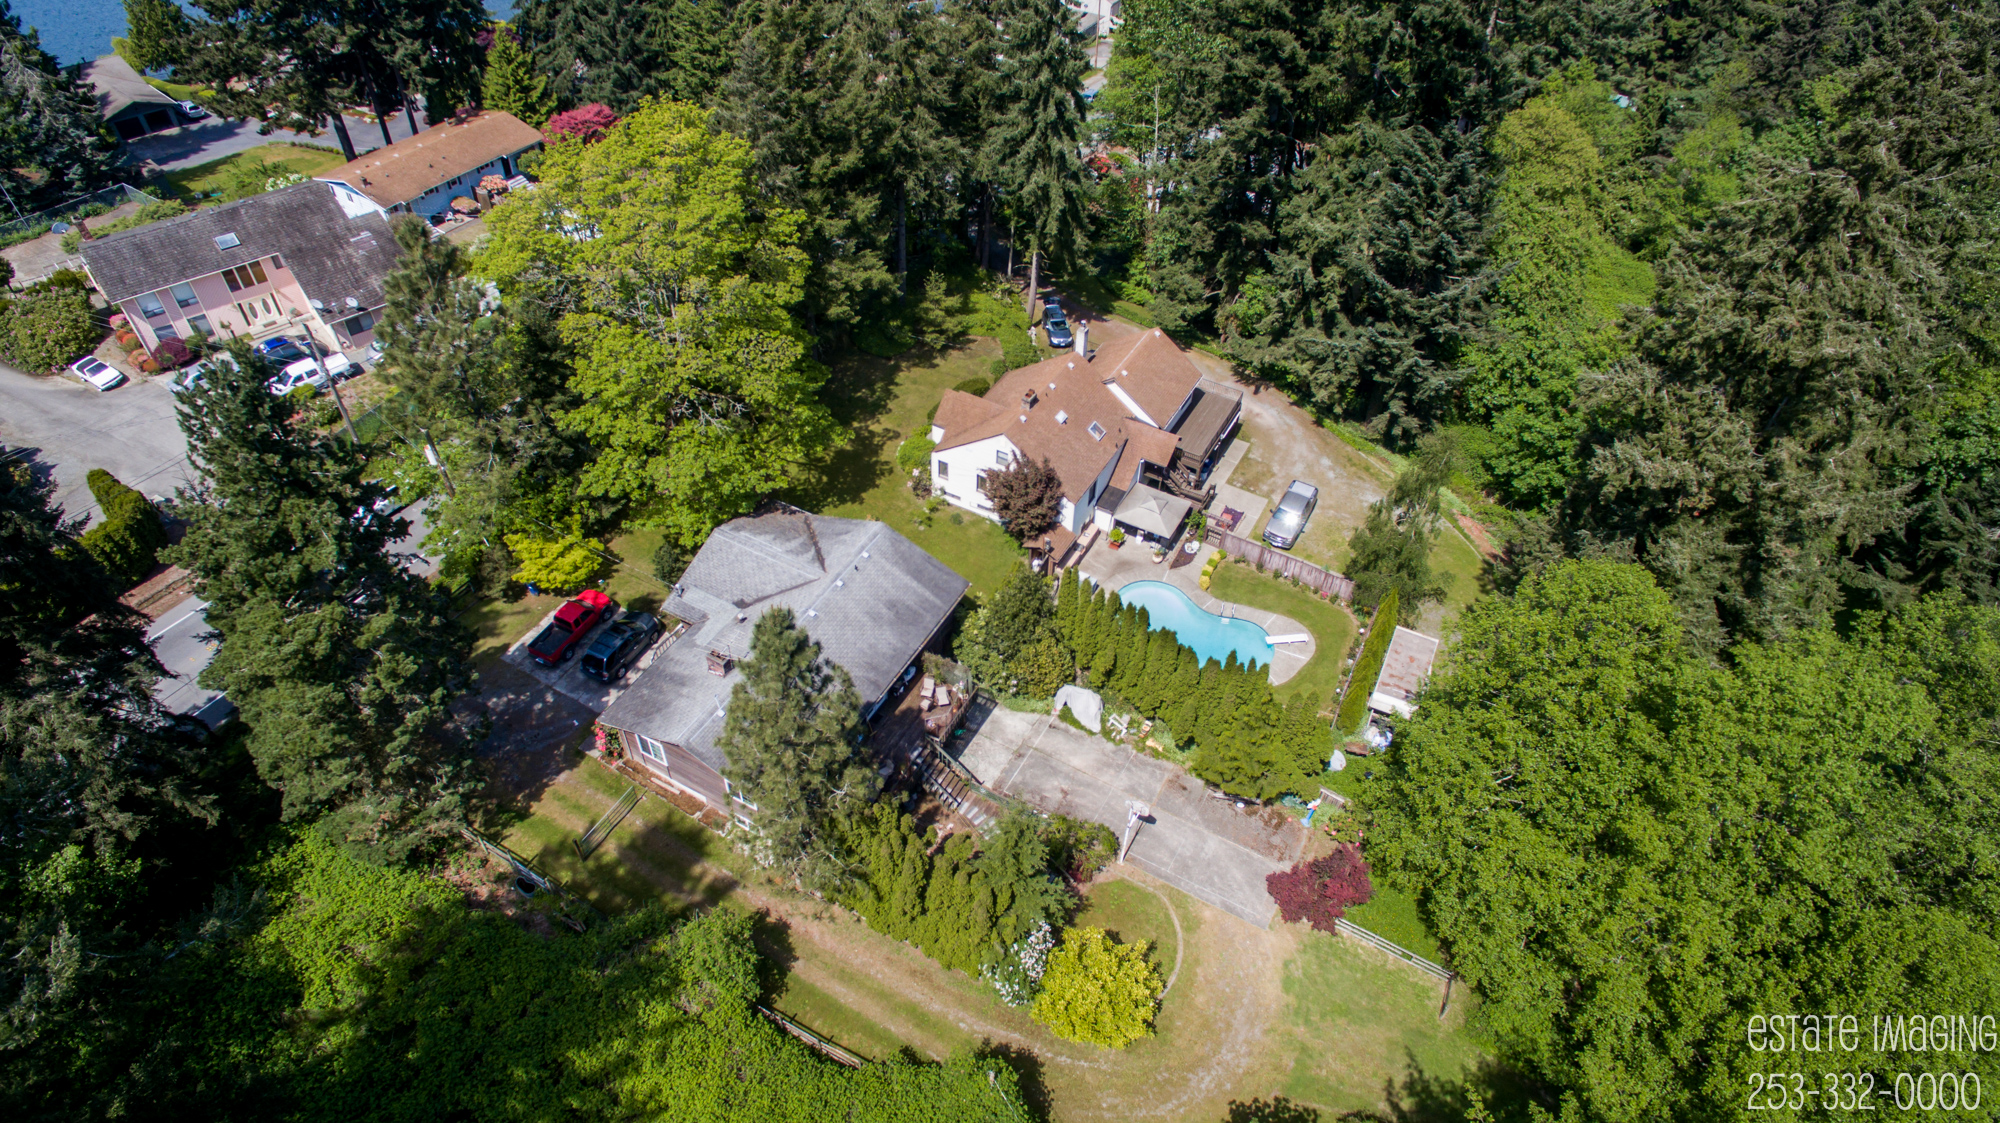 Land for Sale at Steel Lake Crest 30469 28th Ave S Federal Way, Washington 98003 United States